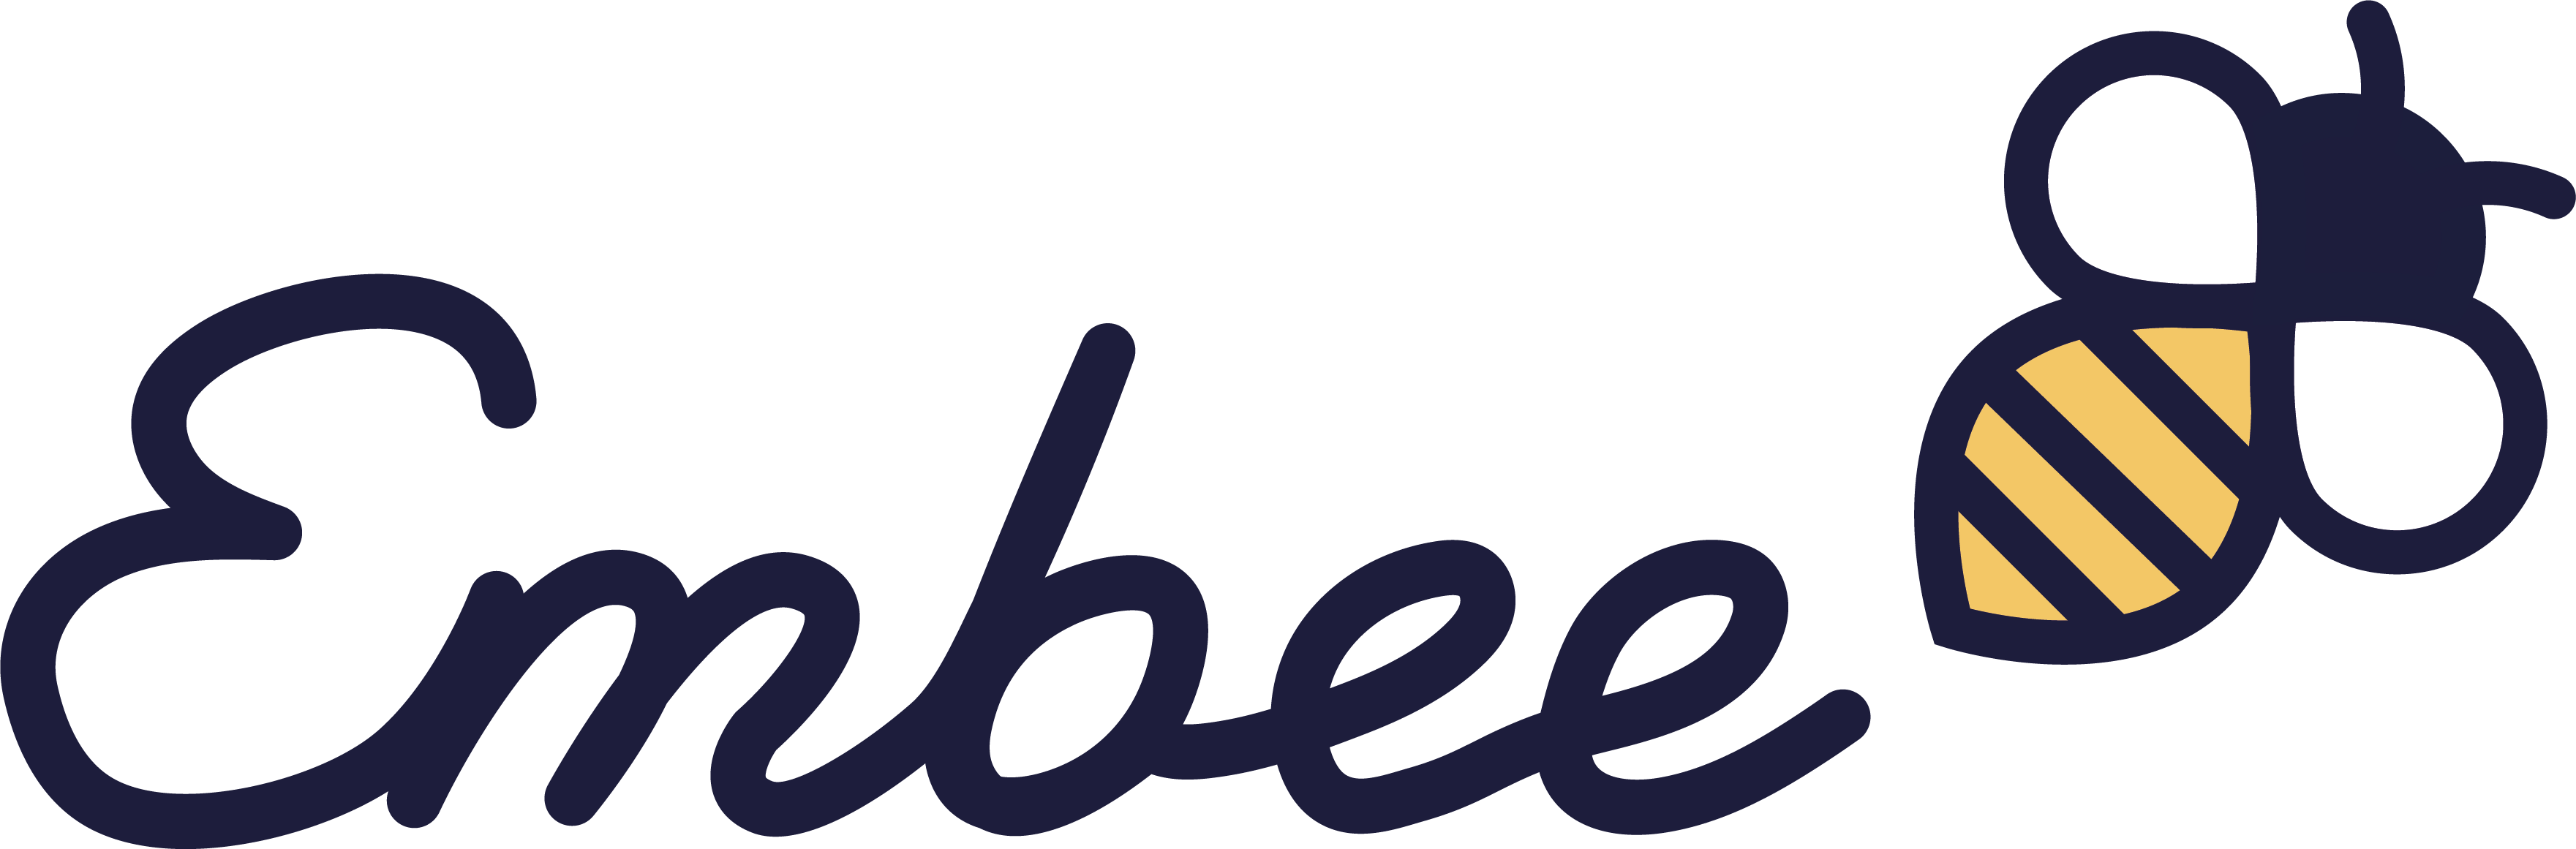 Embee | Graphic and motion designer